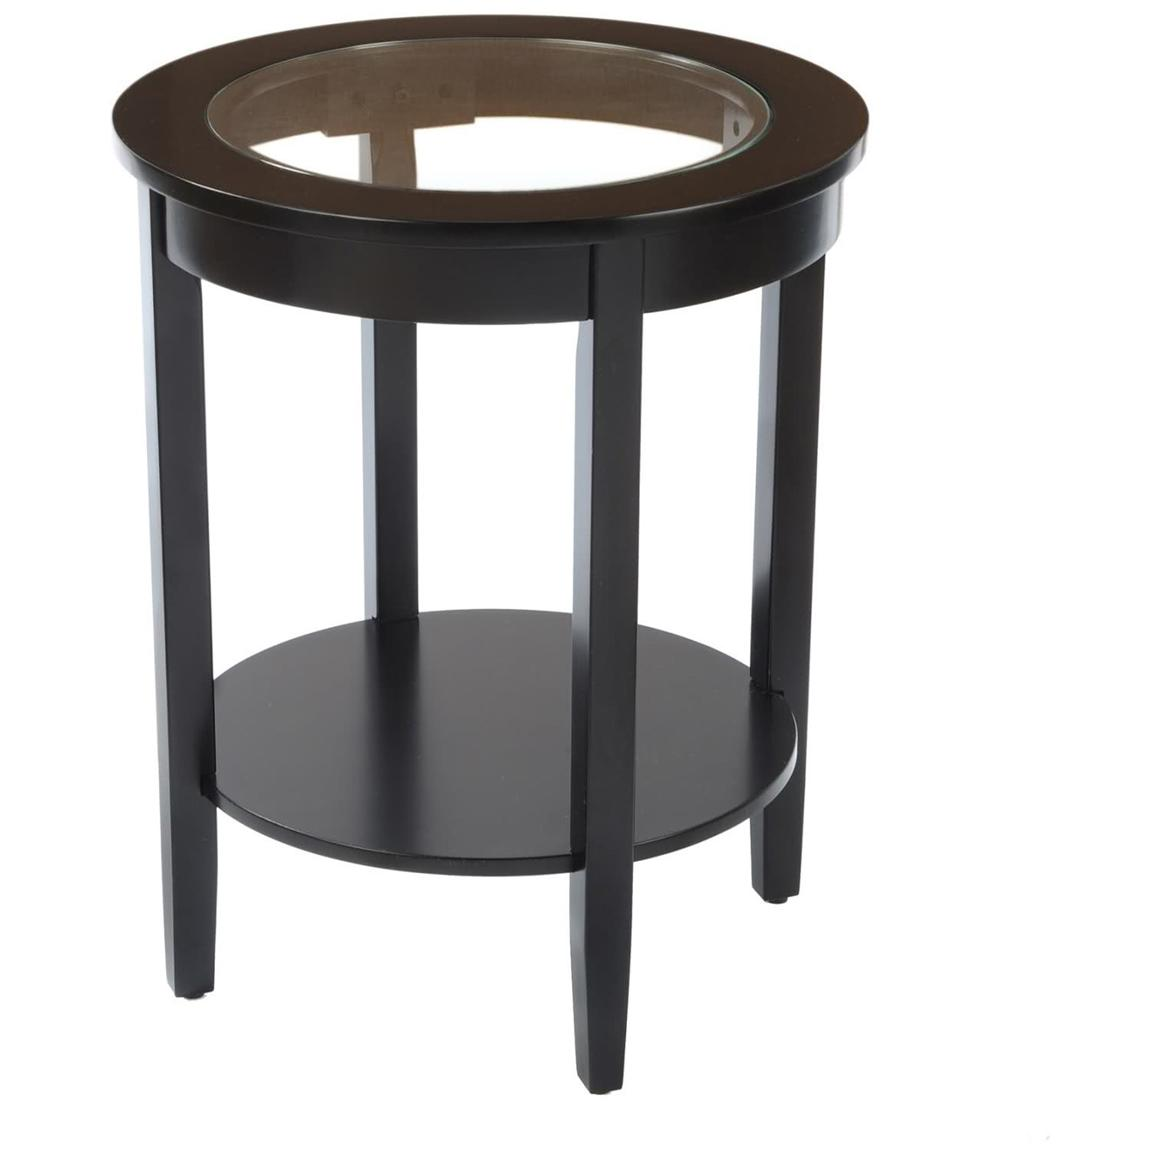 and cleo silver kmart black wood marblegold round white plans legs woodworking pedestal emperor side rustic marble top gold upcycled glass small target metal argos gloss table